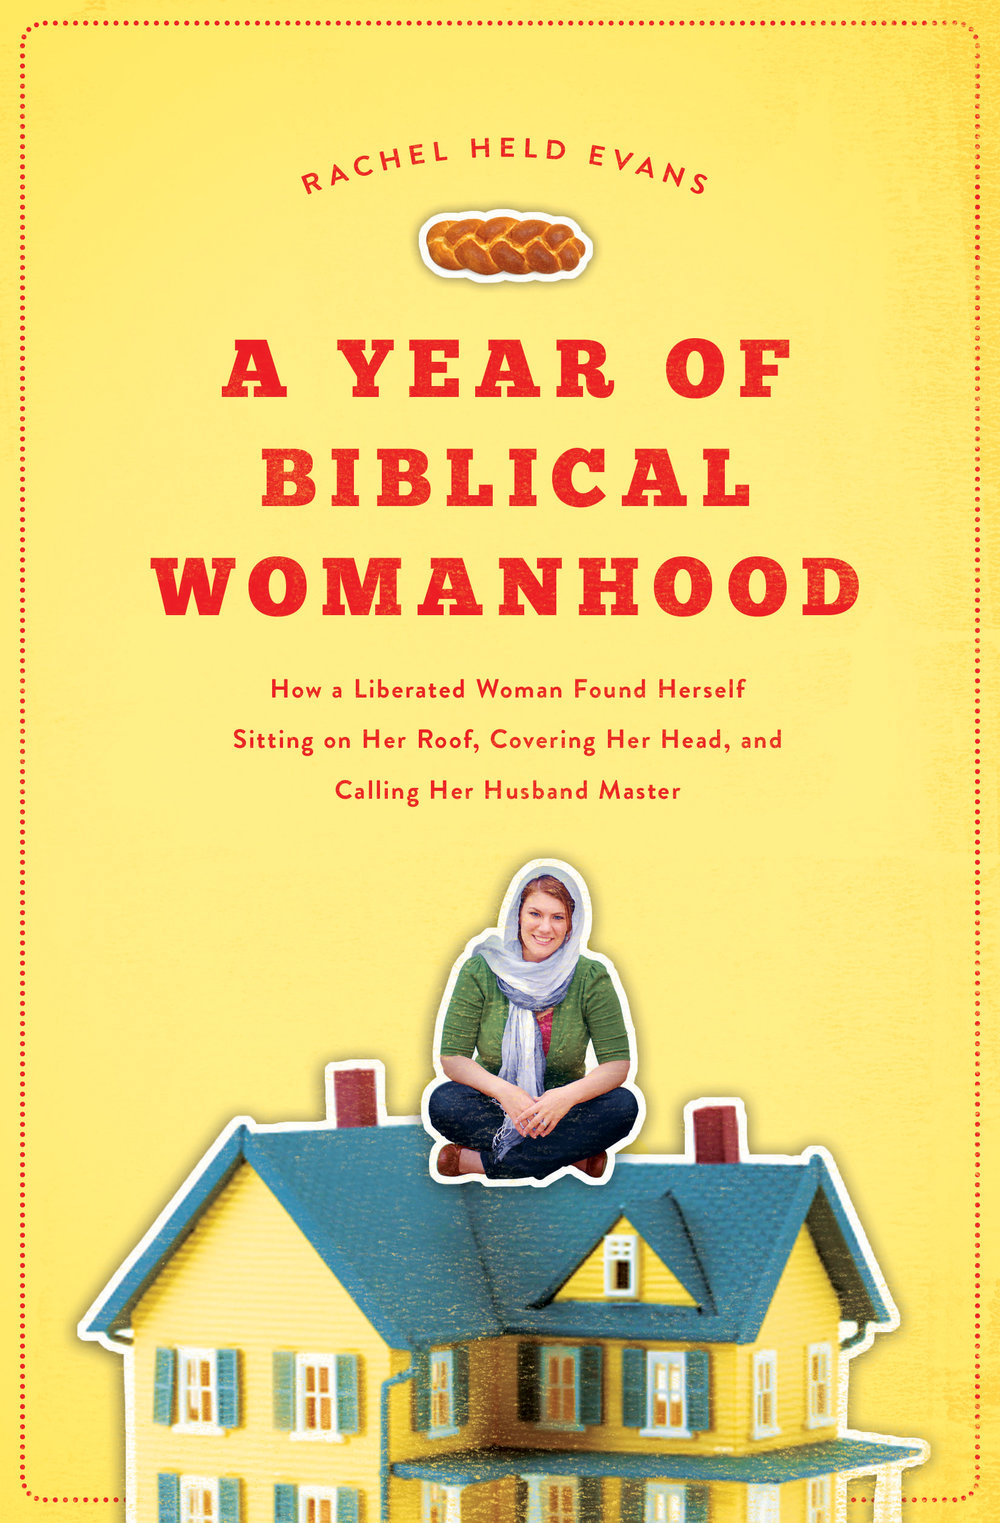 womanhood-book3.jpg